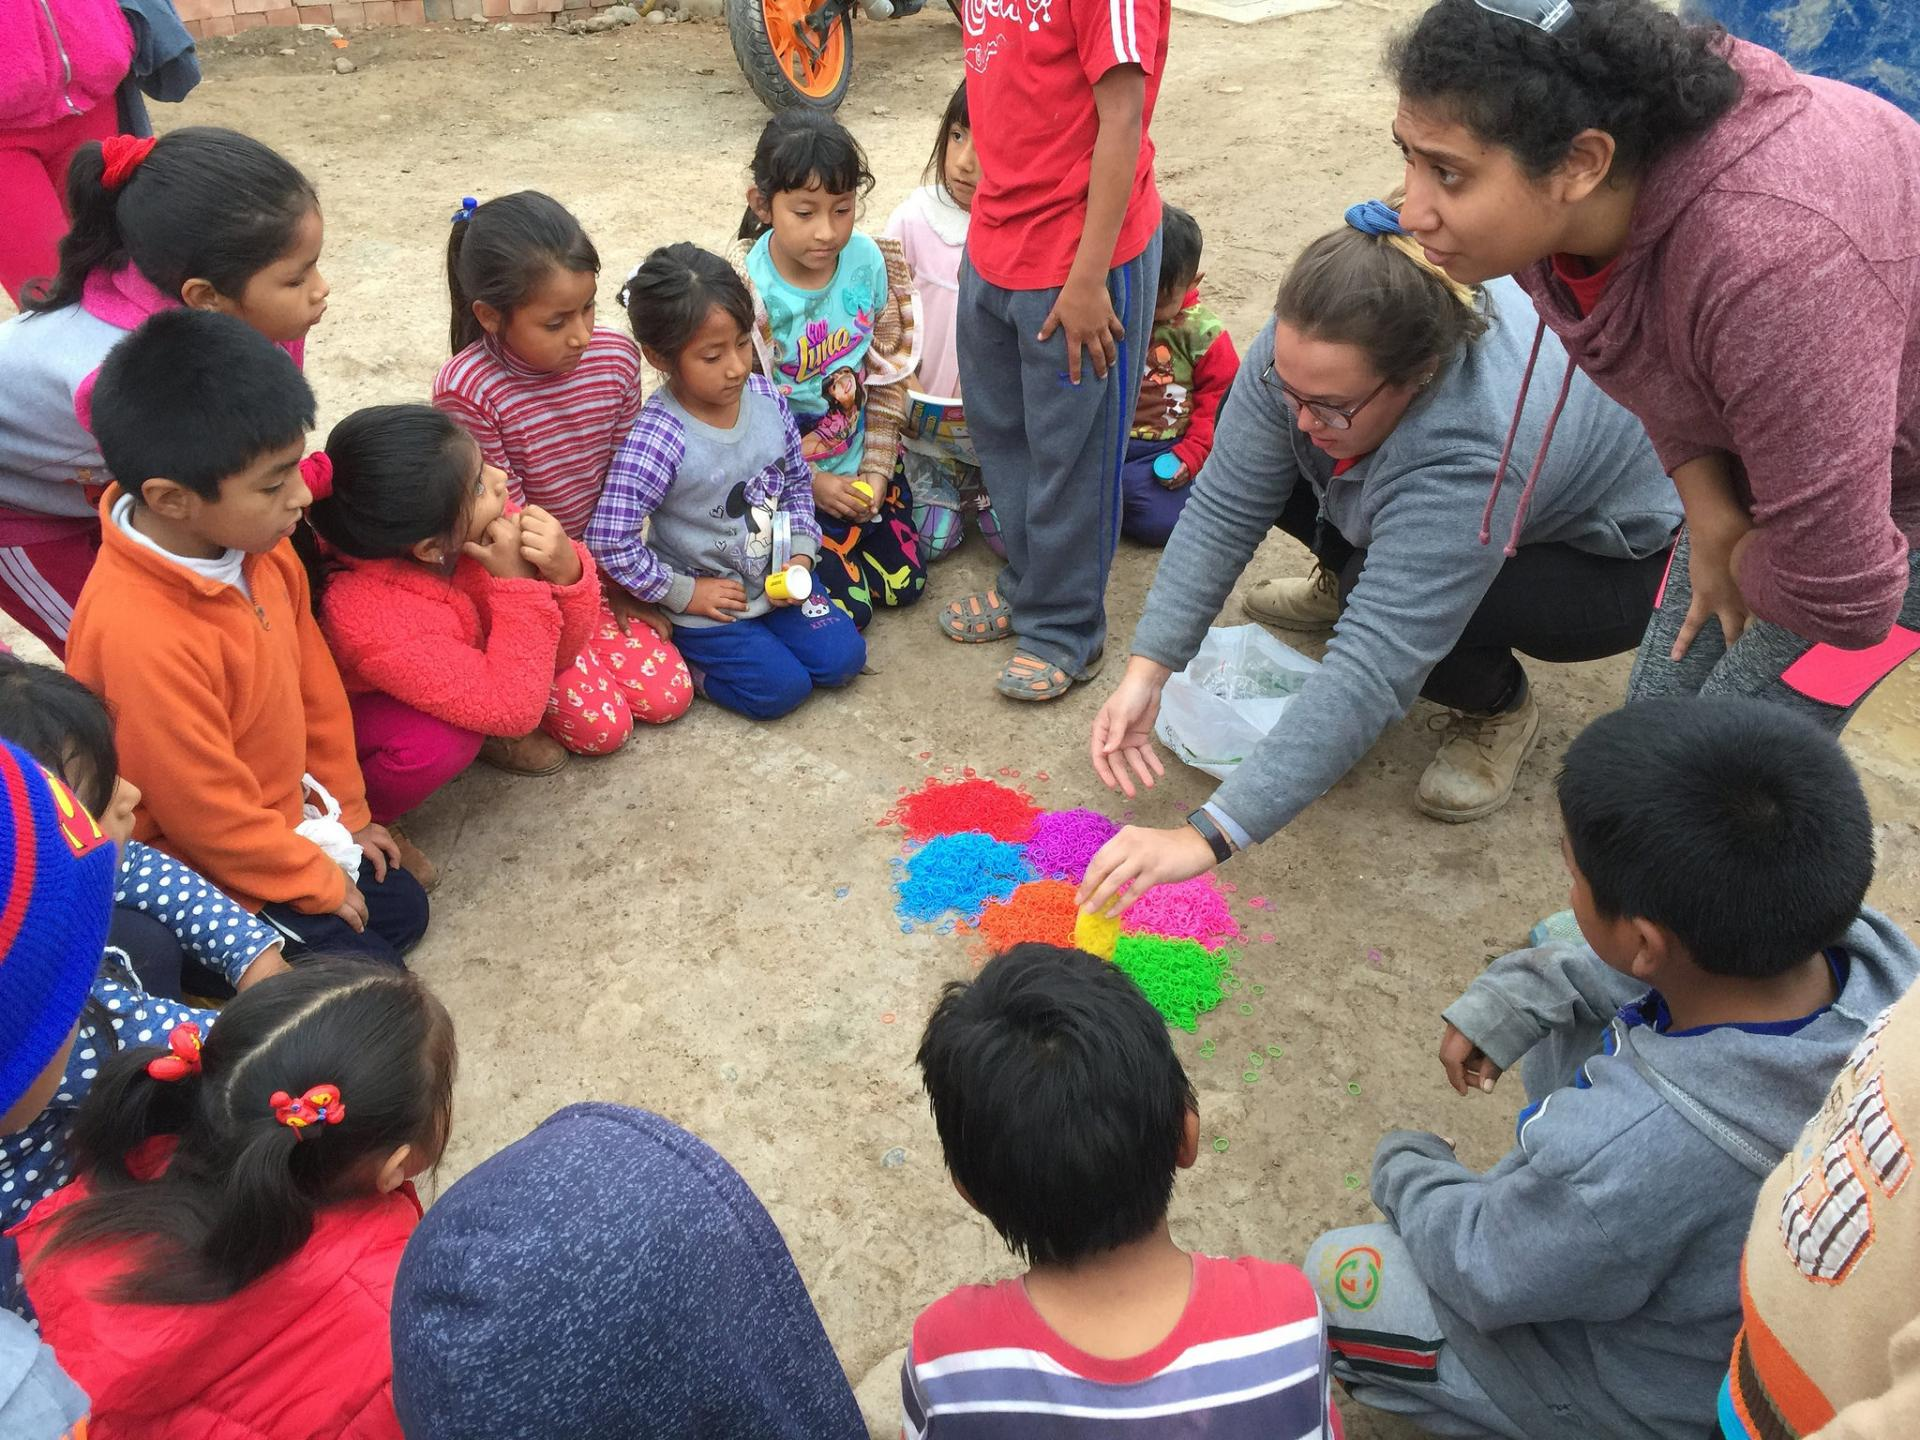 Maria Requena plays a game with children in La Florida.